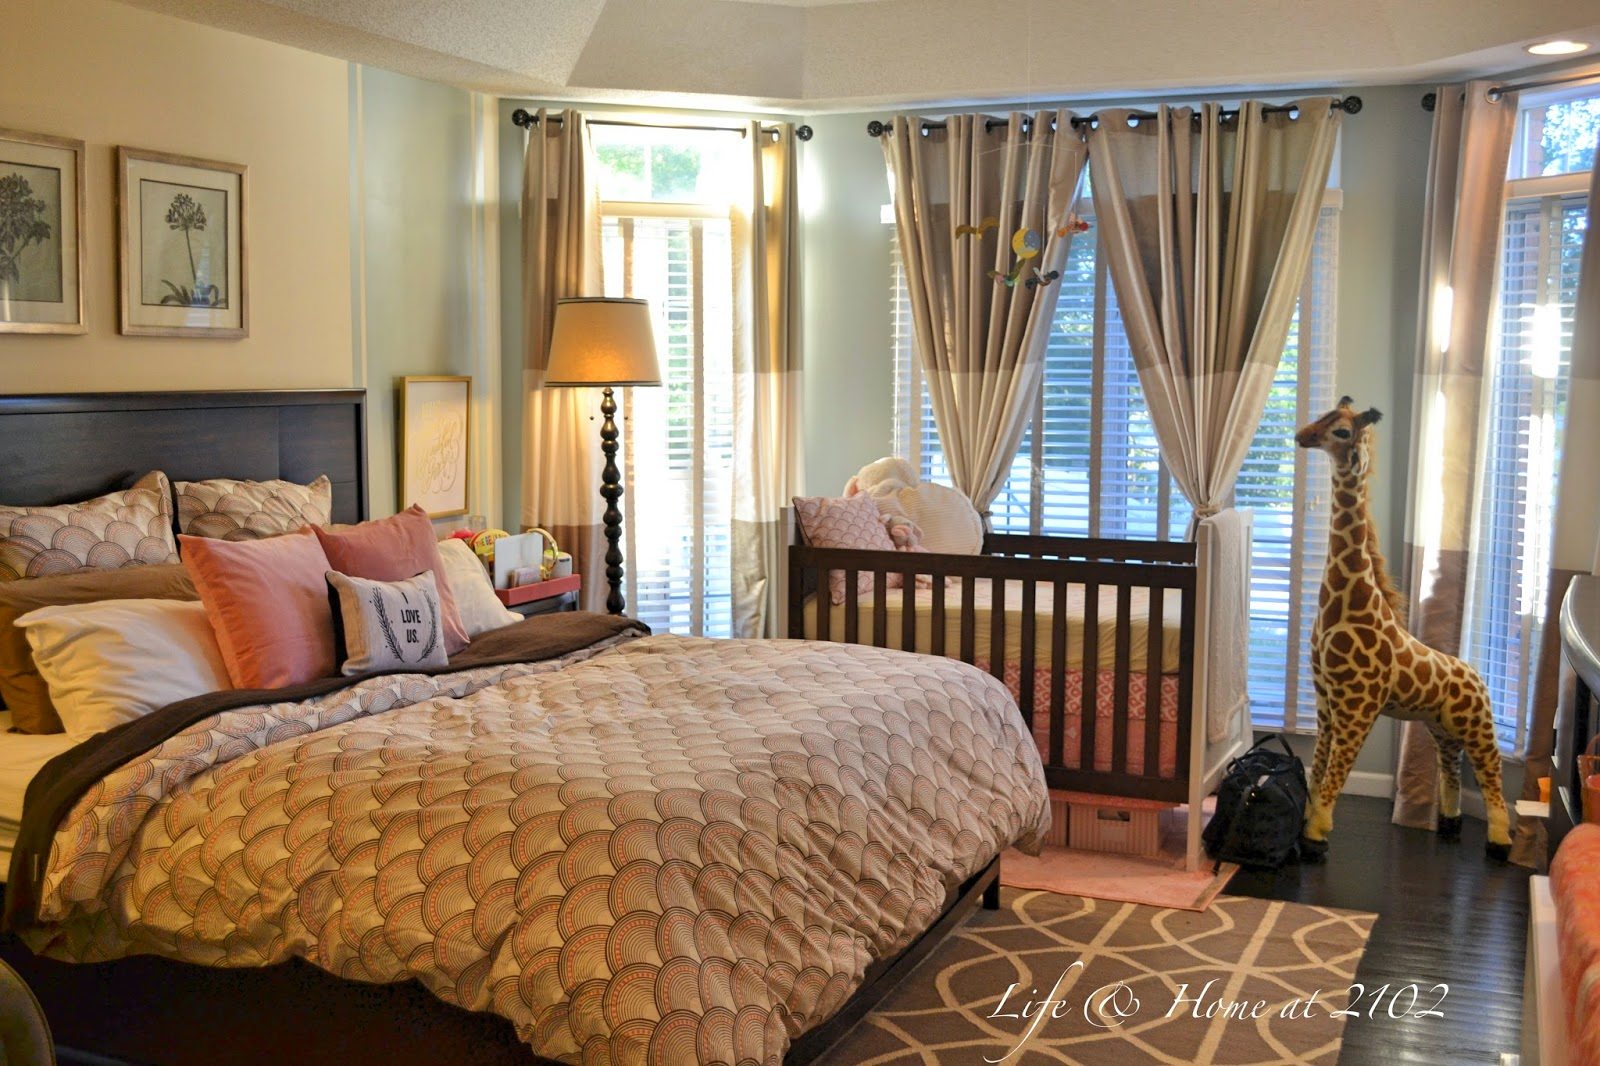 Life Home At 2102 Master Bedroom With Nursery Reveal